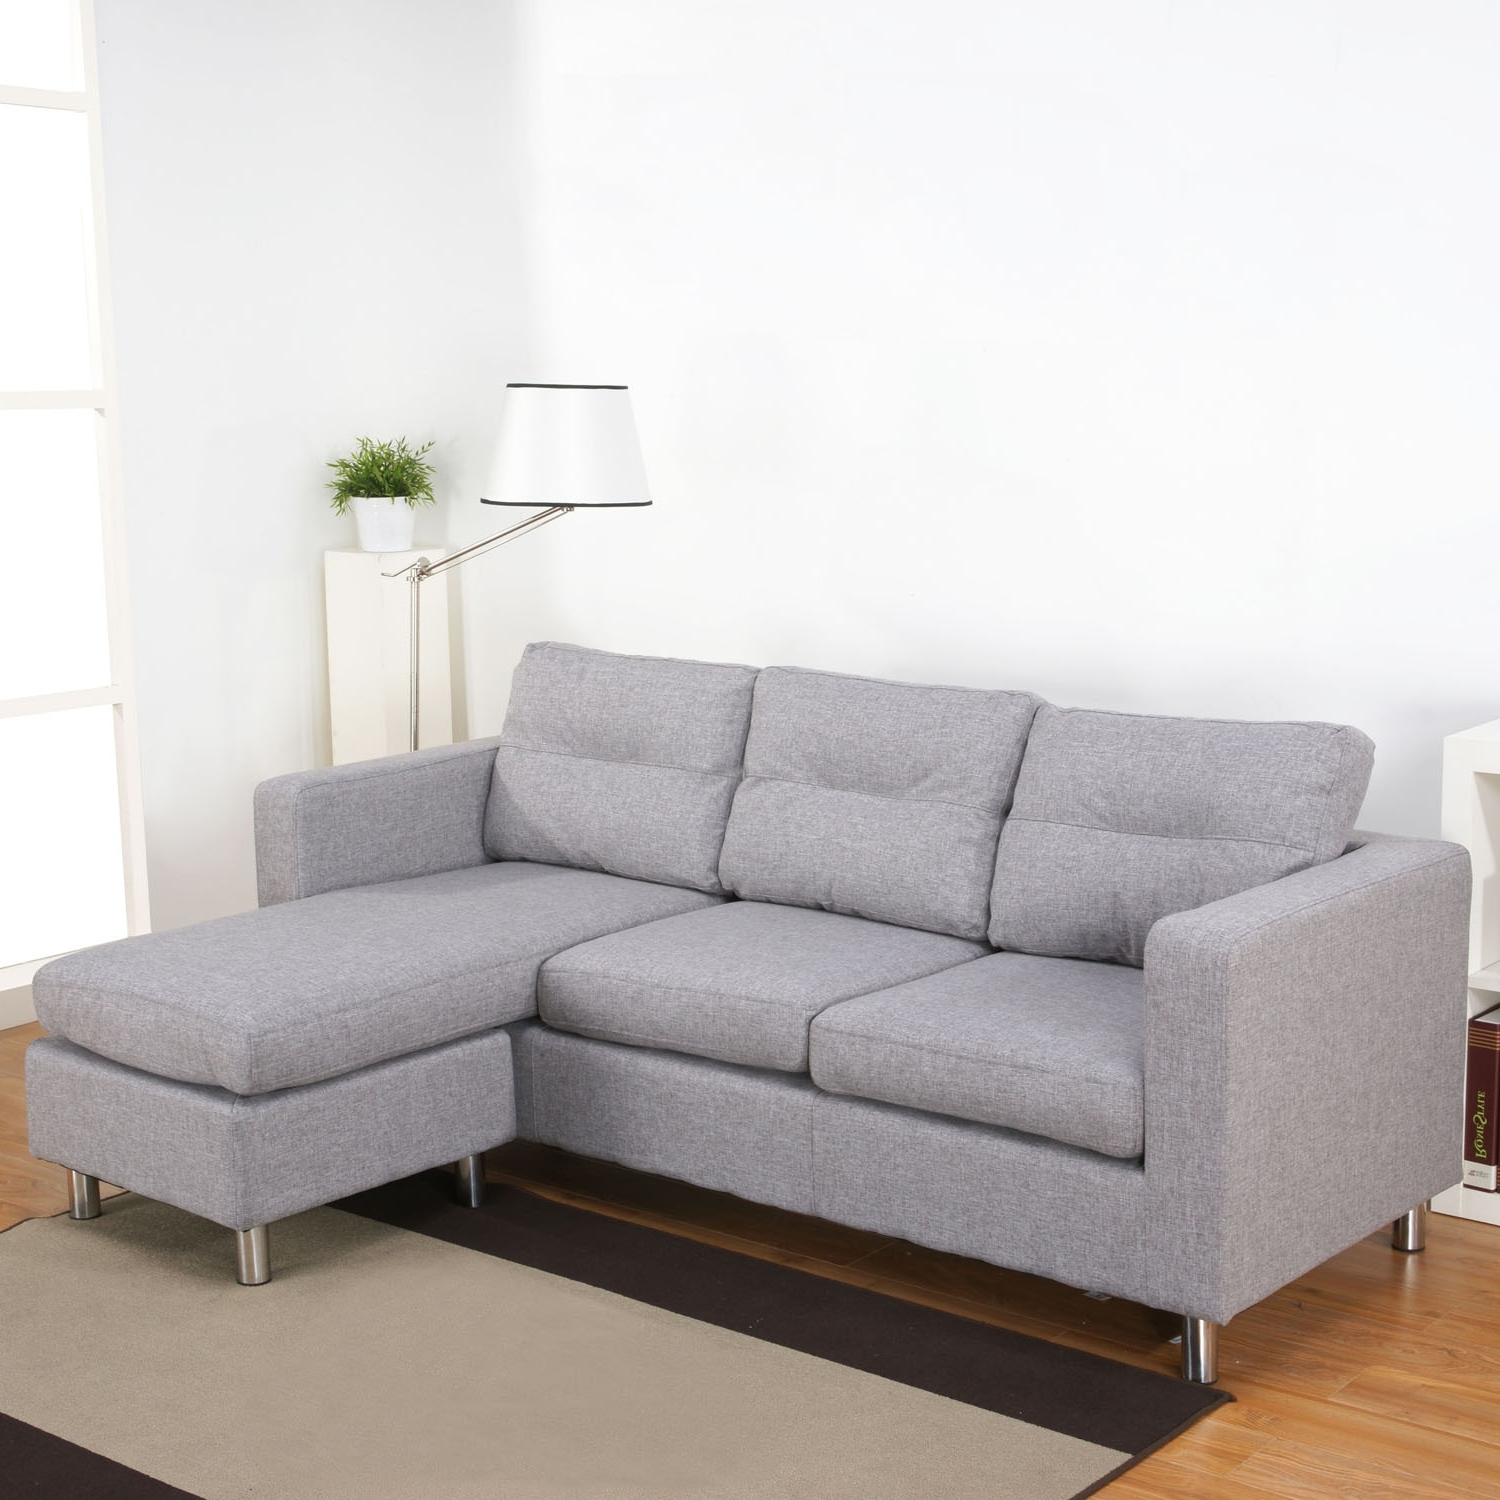 Gray Sectionals With Chaise Pertaining To Well Known Gray Sectional Sofas With Chaise (Gallery 8 of 15)